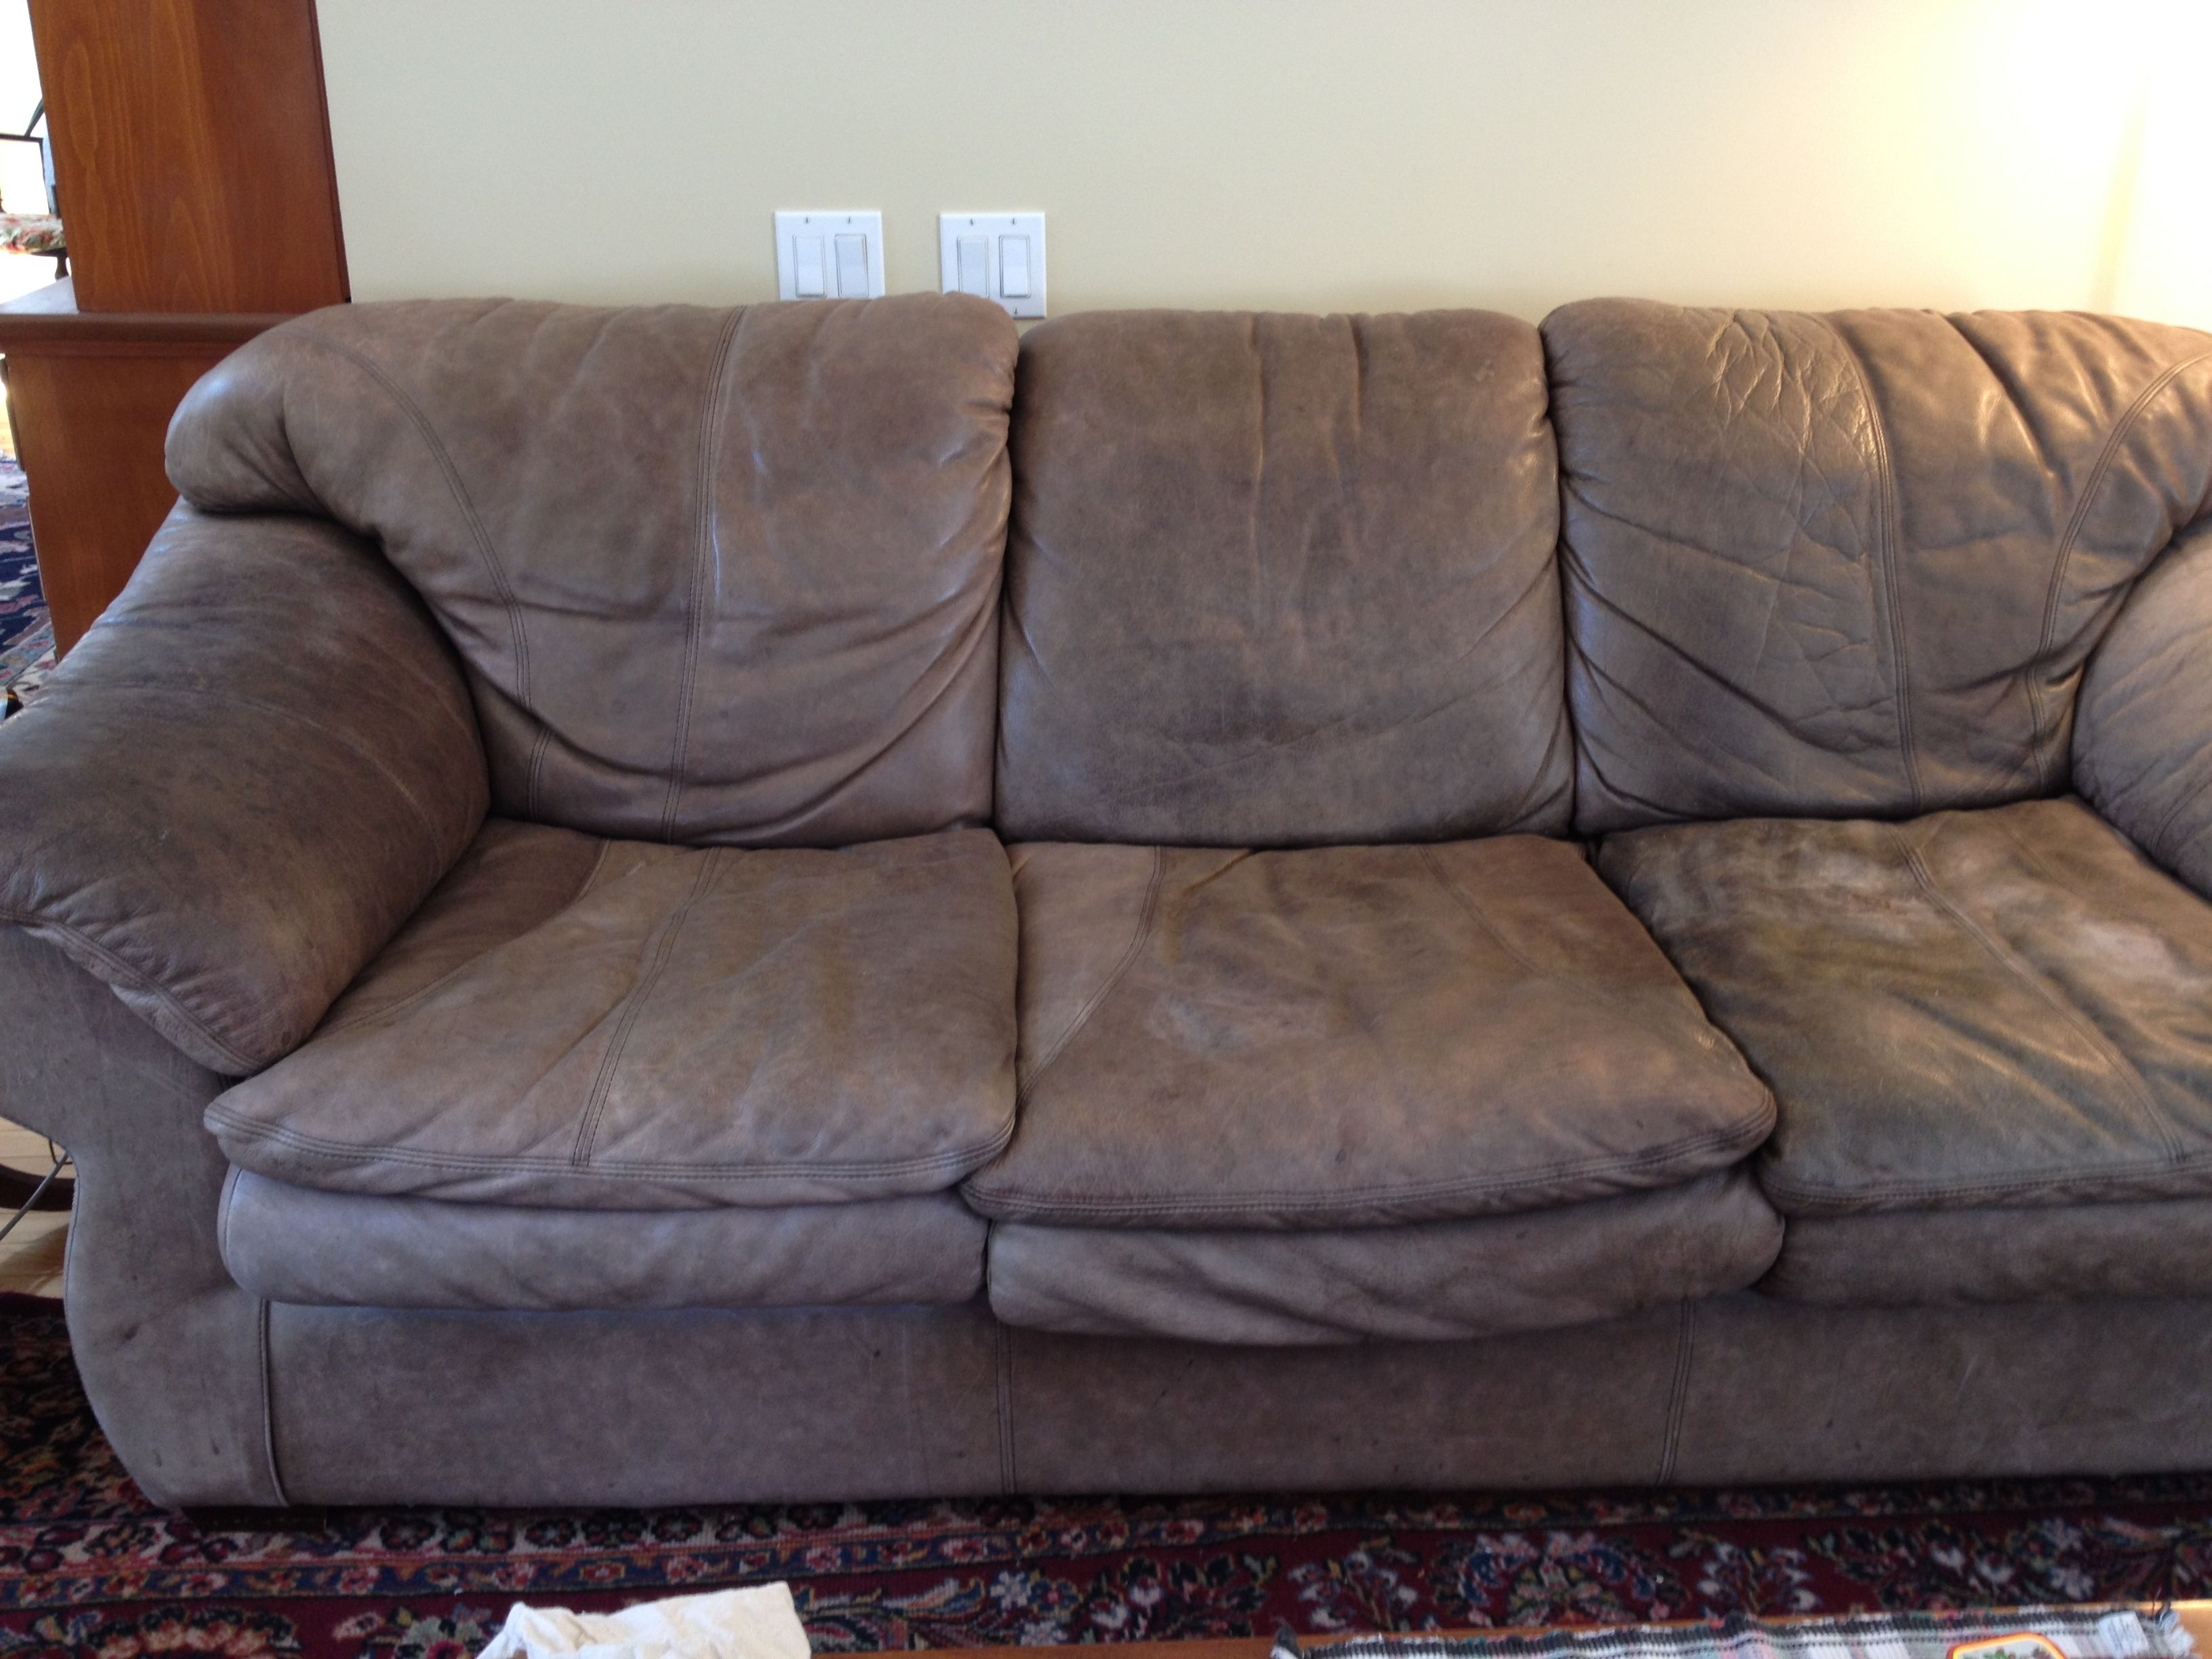 recover sofa cushions leg warehouse promo code a leather how to